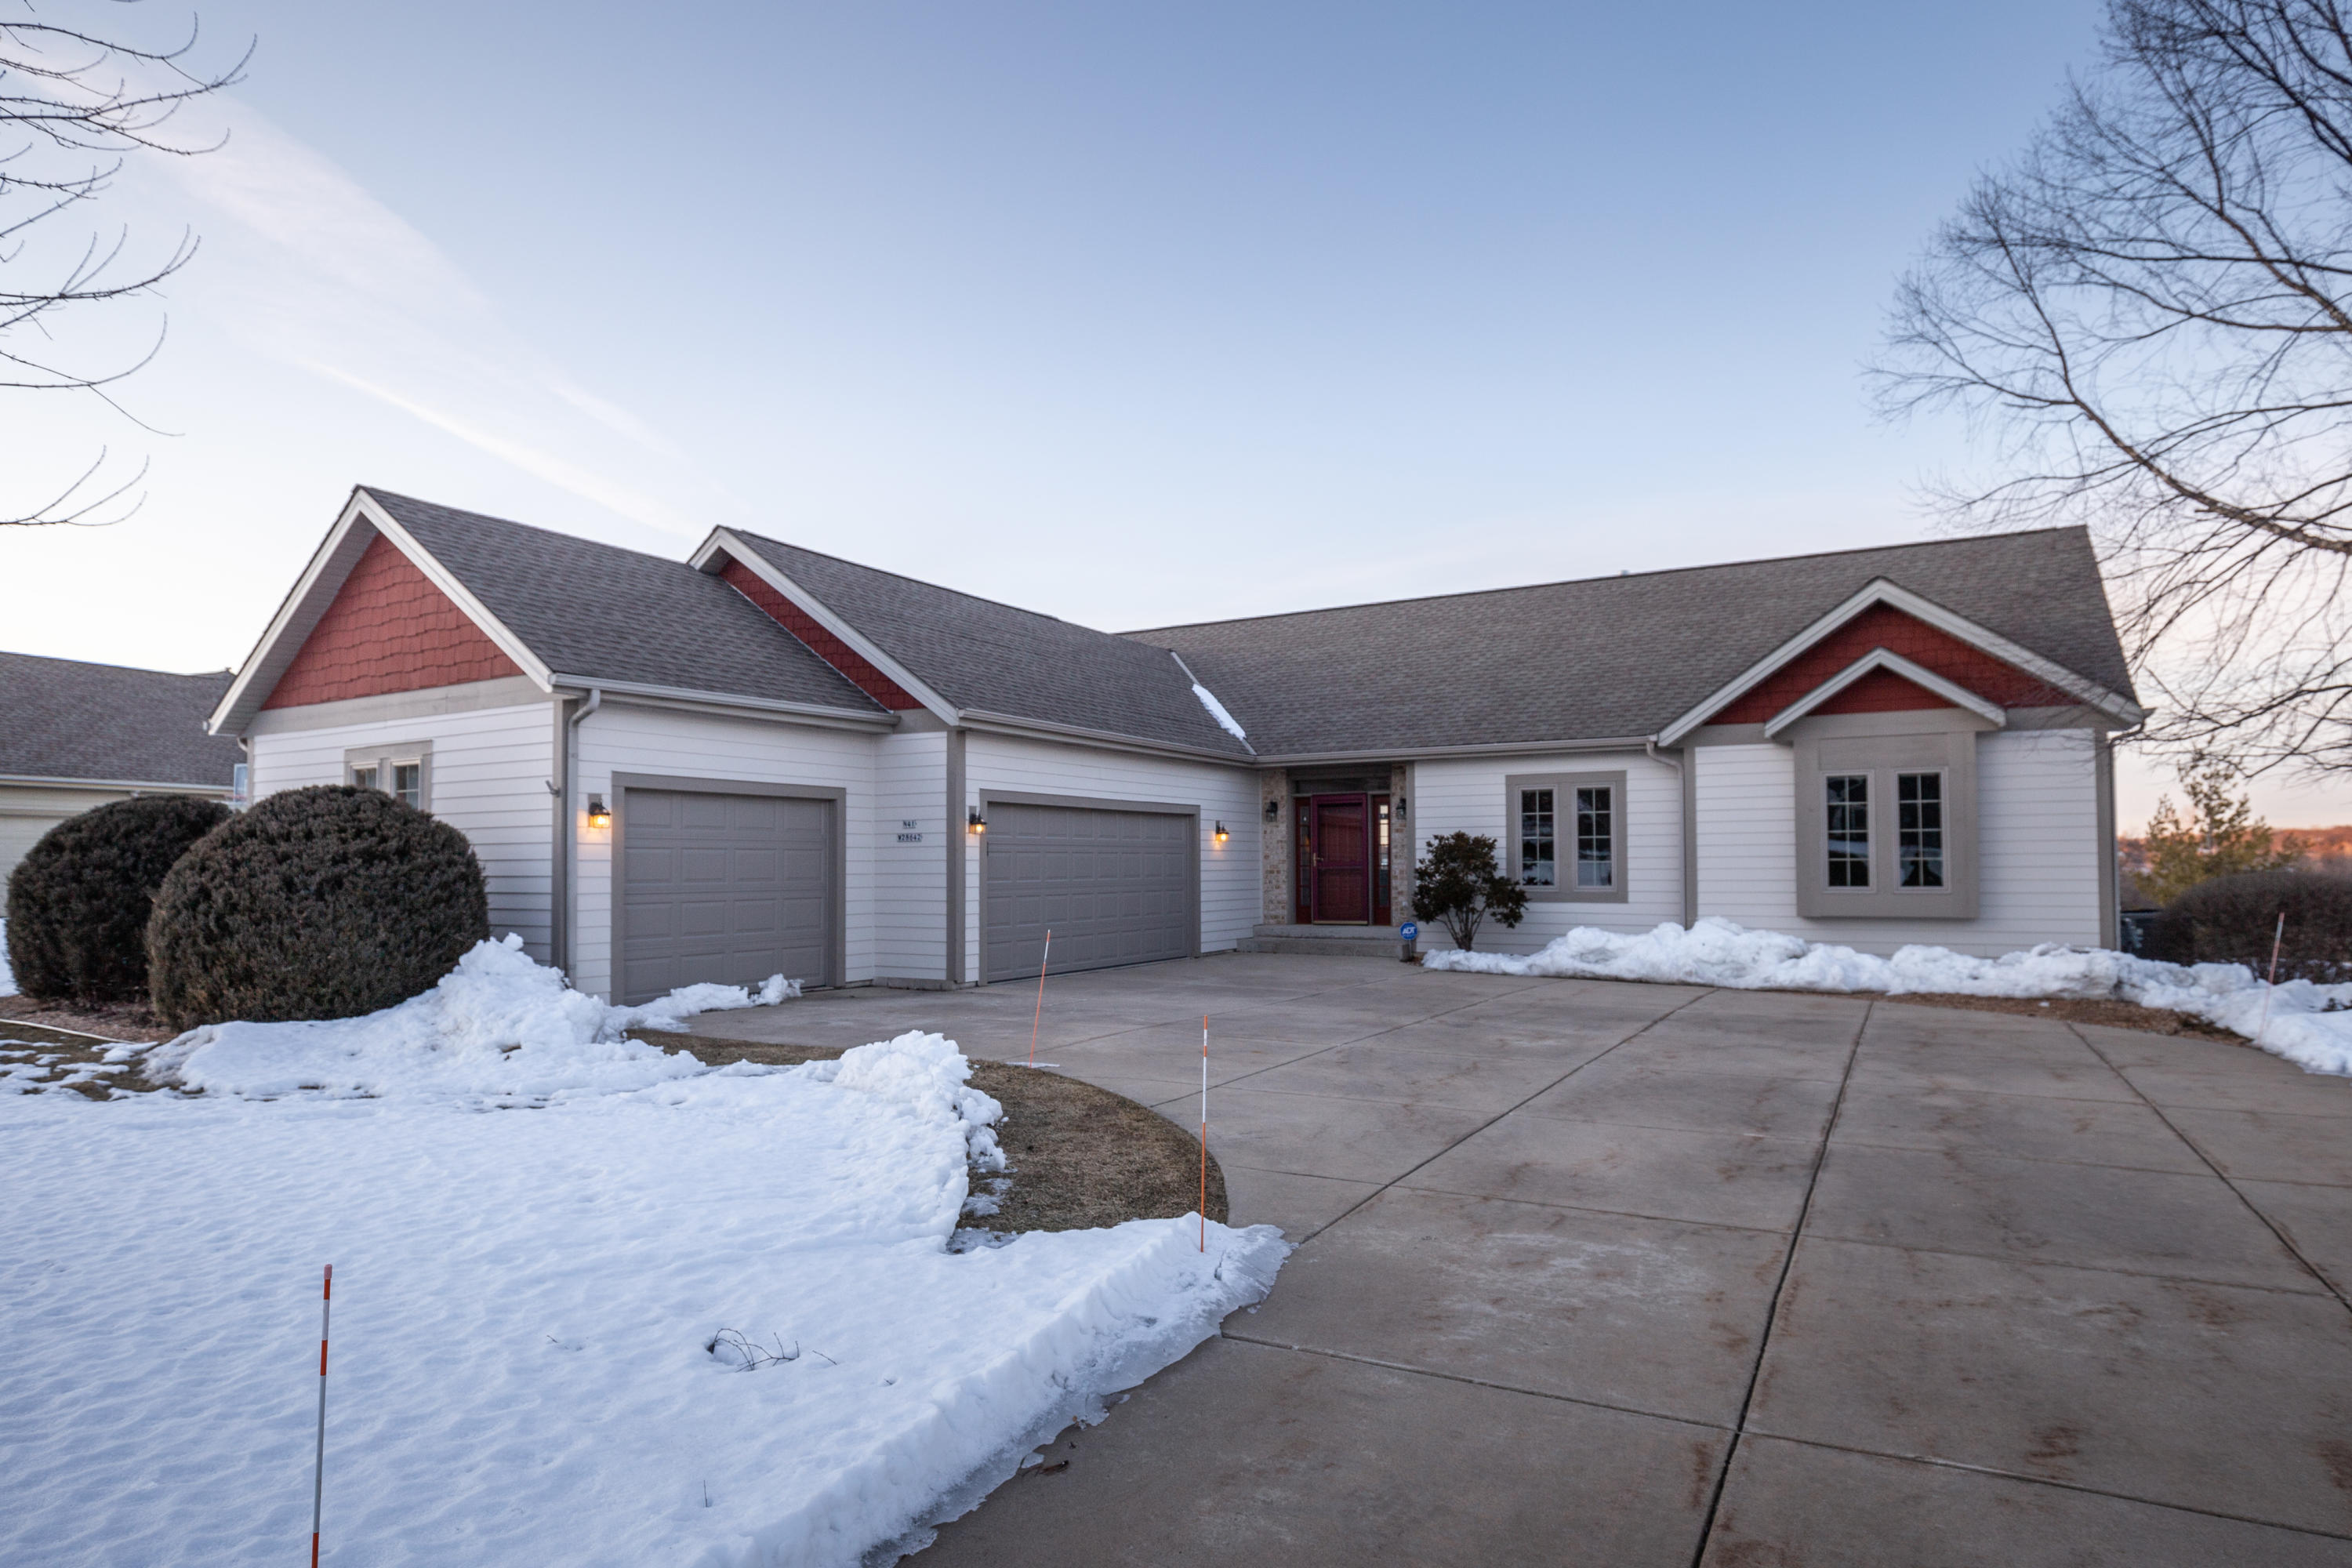 N41W28642 Imperial Dr, Delafield, Wisconsin 53072, 4 Bedrooms Bedrooms, 10 Rooms Rooms,3 BathroomsBathrooms,Single-Family,For Sale,Imperial Dr,1679244